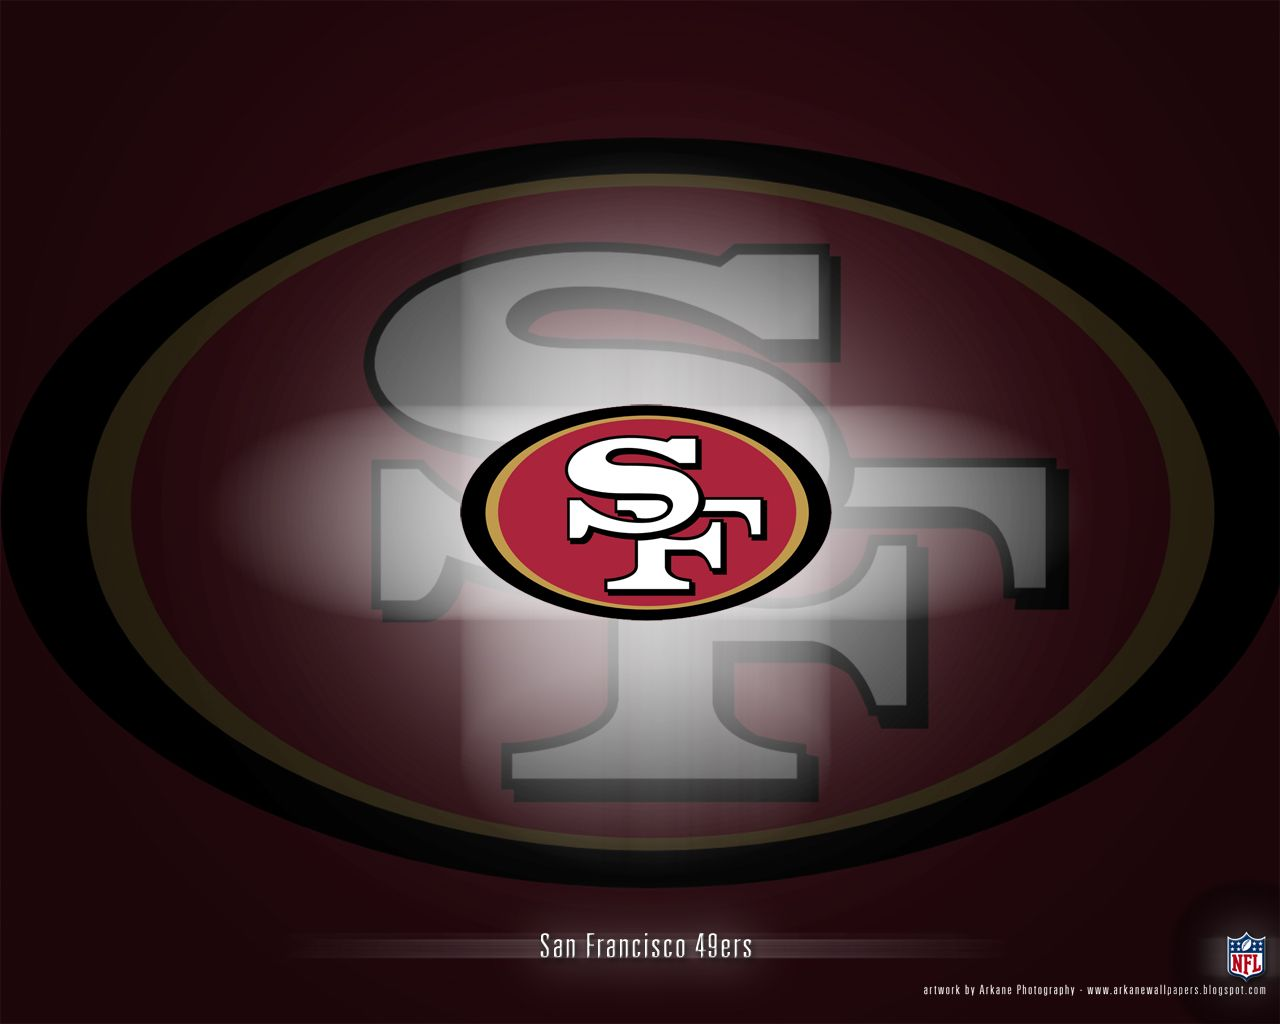 San Francisco 49ers 49ers wallpapers HD San francisco